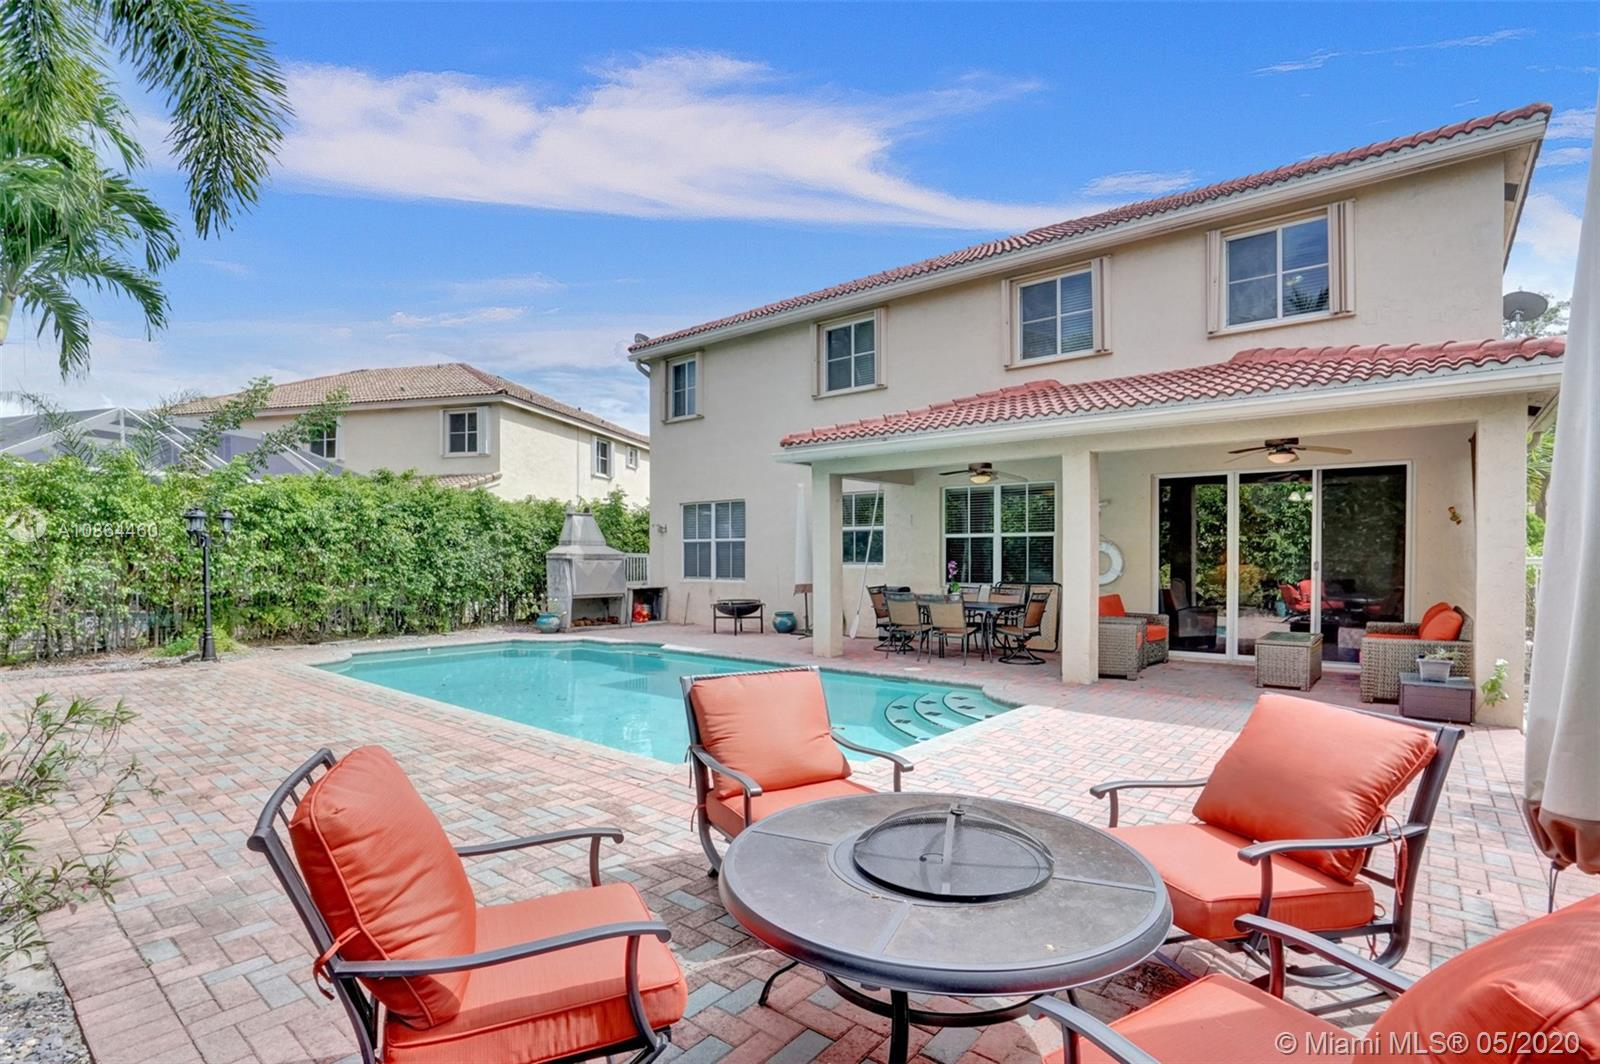 A large 6 bedroom, 4 bath pool home with lush landscaping is ready to meet your entire family. Located in the prestigious gated Weston community of The Ridges, with one of the most fabulous Community Centers. The short and easy walk to the library, middle and high schools makes me located in one of the most desirable areas of this community. My yard is landscaped for peace and privacy.  Plenty of area for entertaining outside by my paved deck pool. A complete bedroom & bath on the first level is perfect for nannies, in-laws or guests. You'll love to cook in my upgraded kitchen with granite, stainless and a perfect eat-in island. 3 car garage will store all the cars, bikes, and more. You will have an easy commute to 75 & 595 & the tranquil large lakes welcome you home to stress free living.